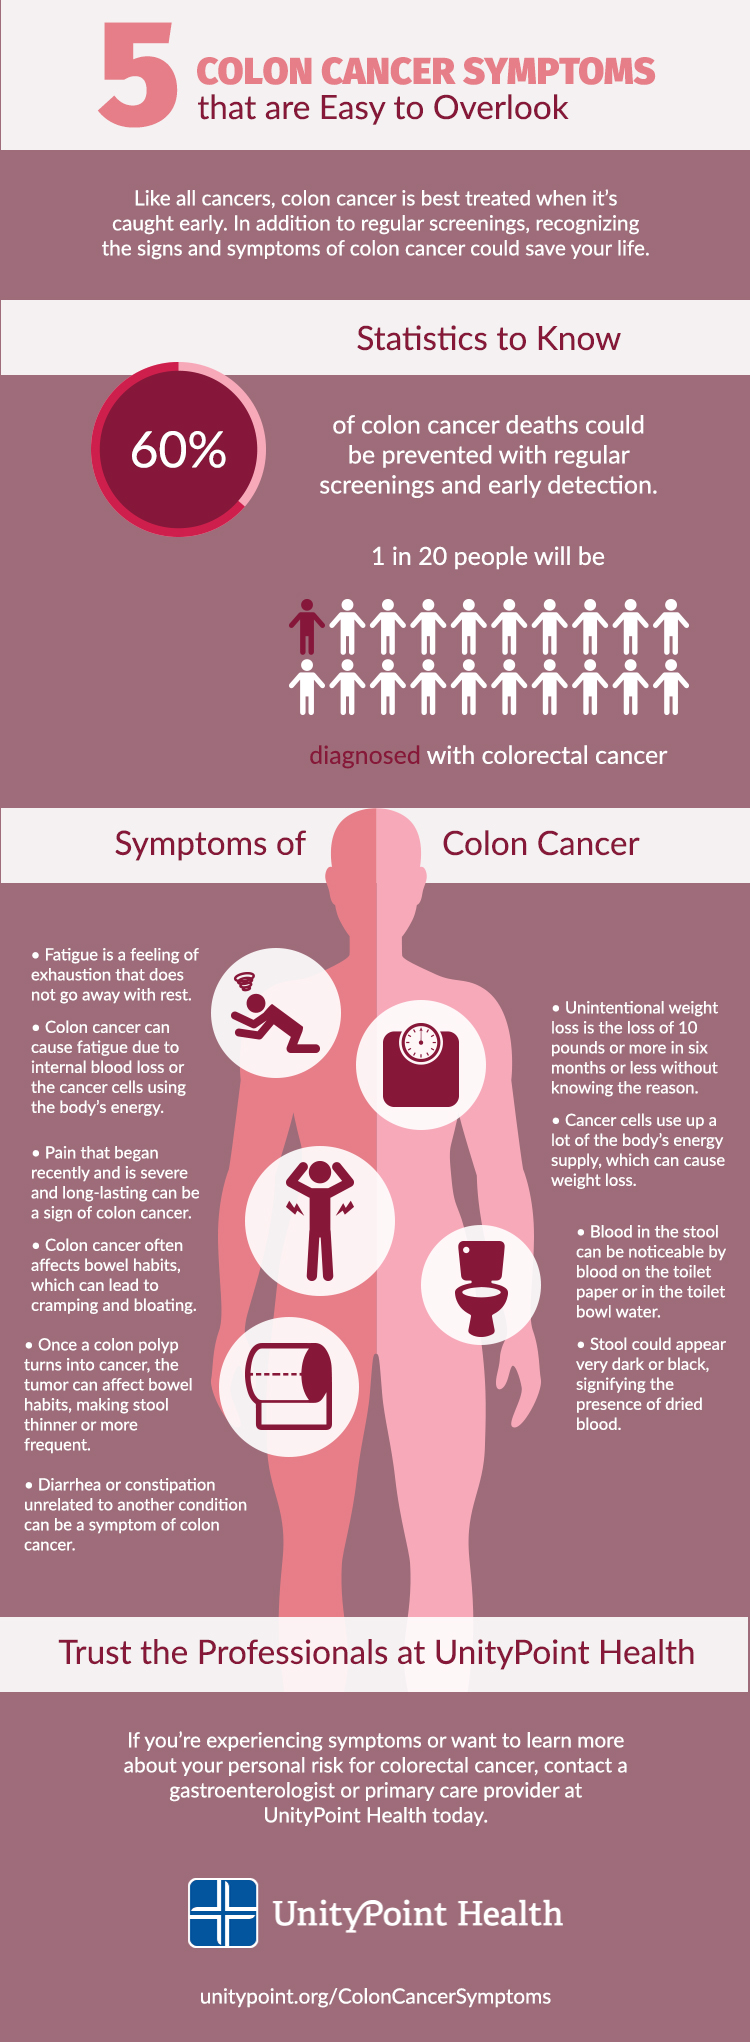 5 colon cancer symptoms that are easy to overlook, Human Body